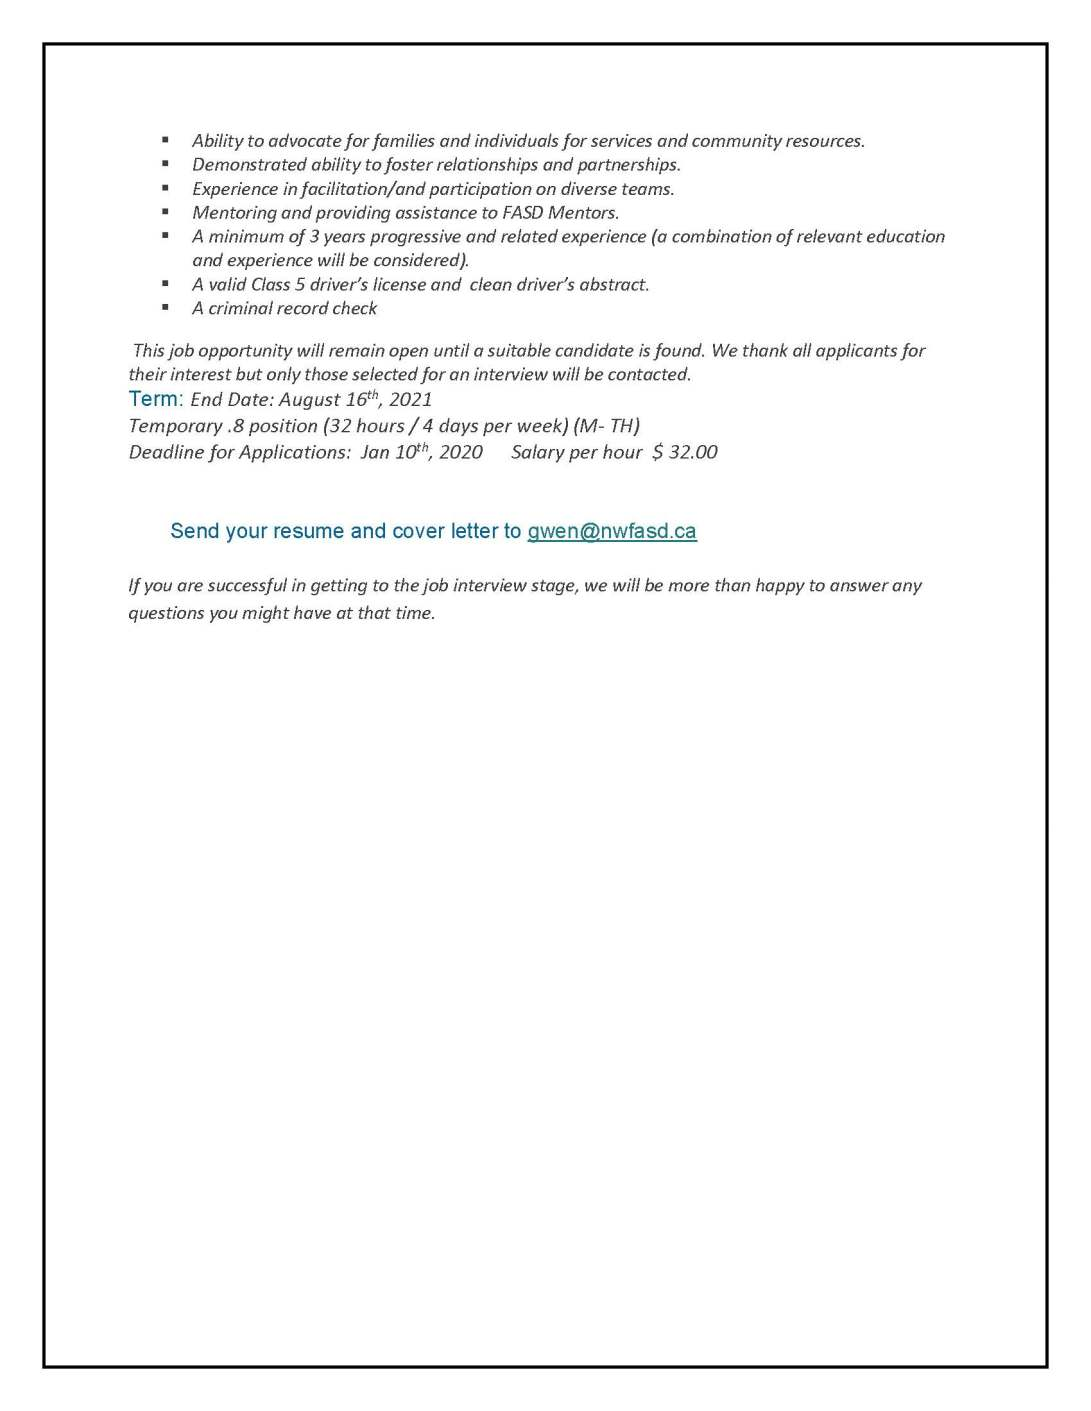 FASD Community Resource advocate Job Ad Dec 12_Page_2.jpg